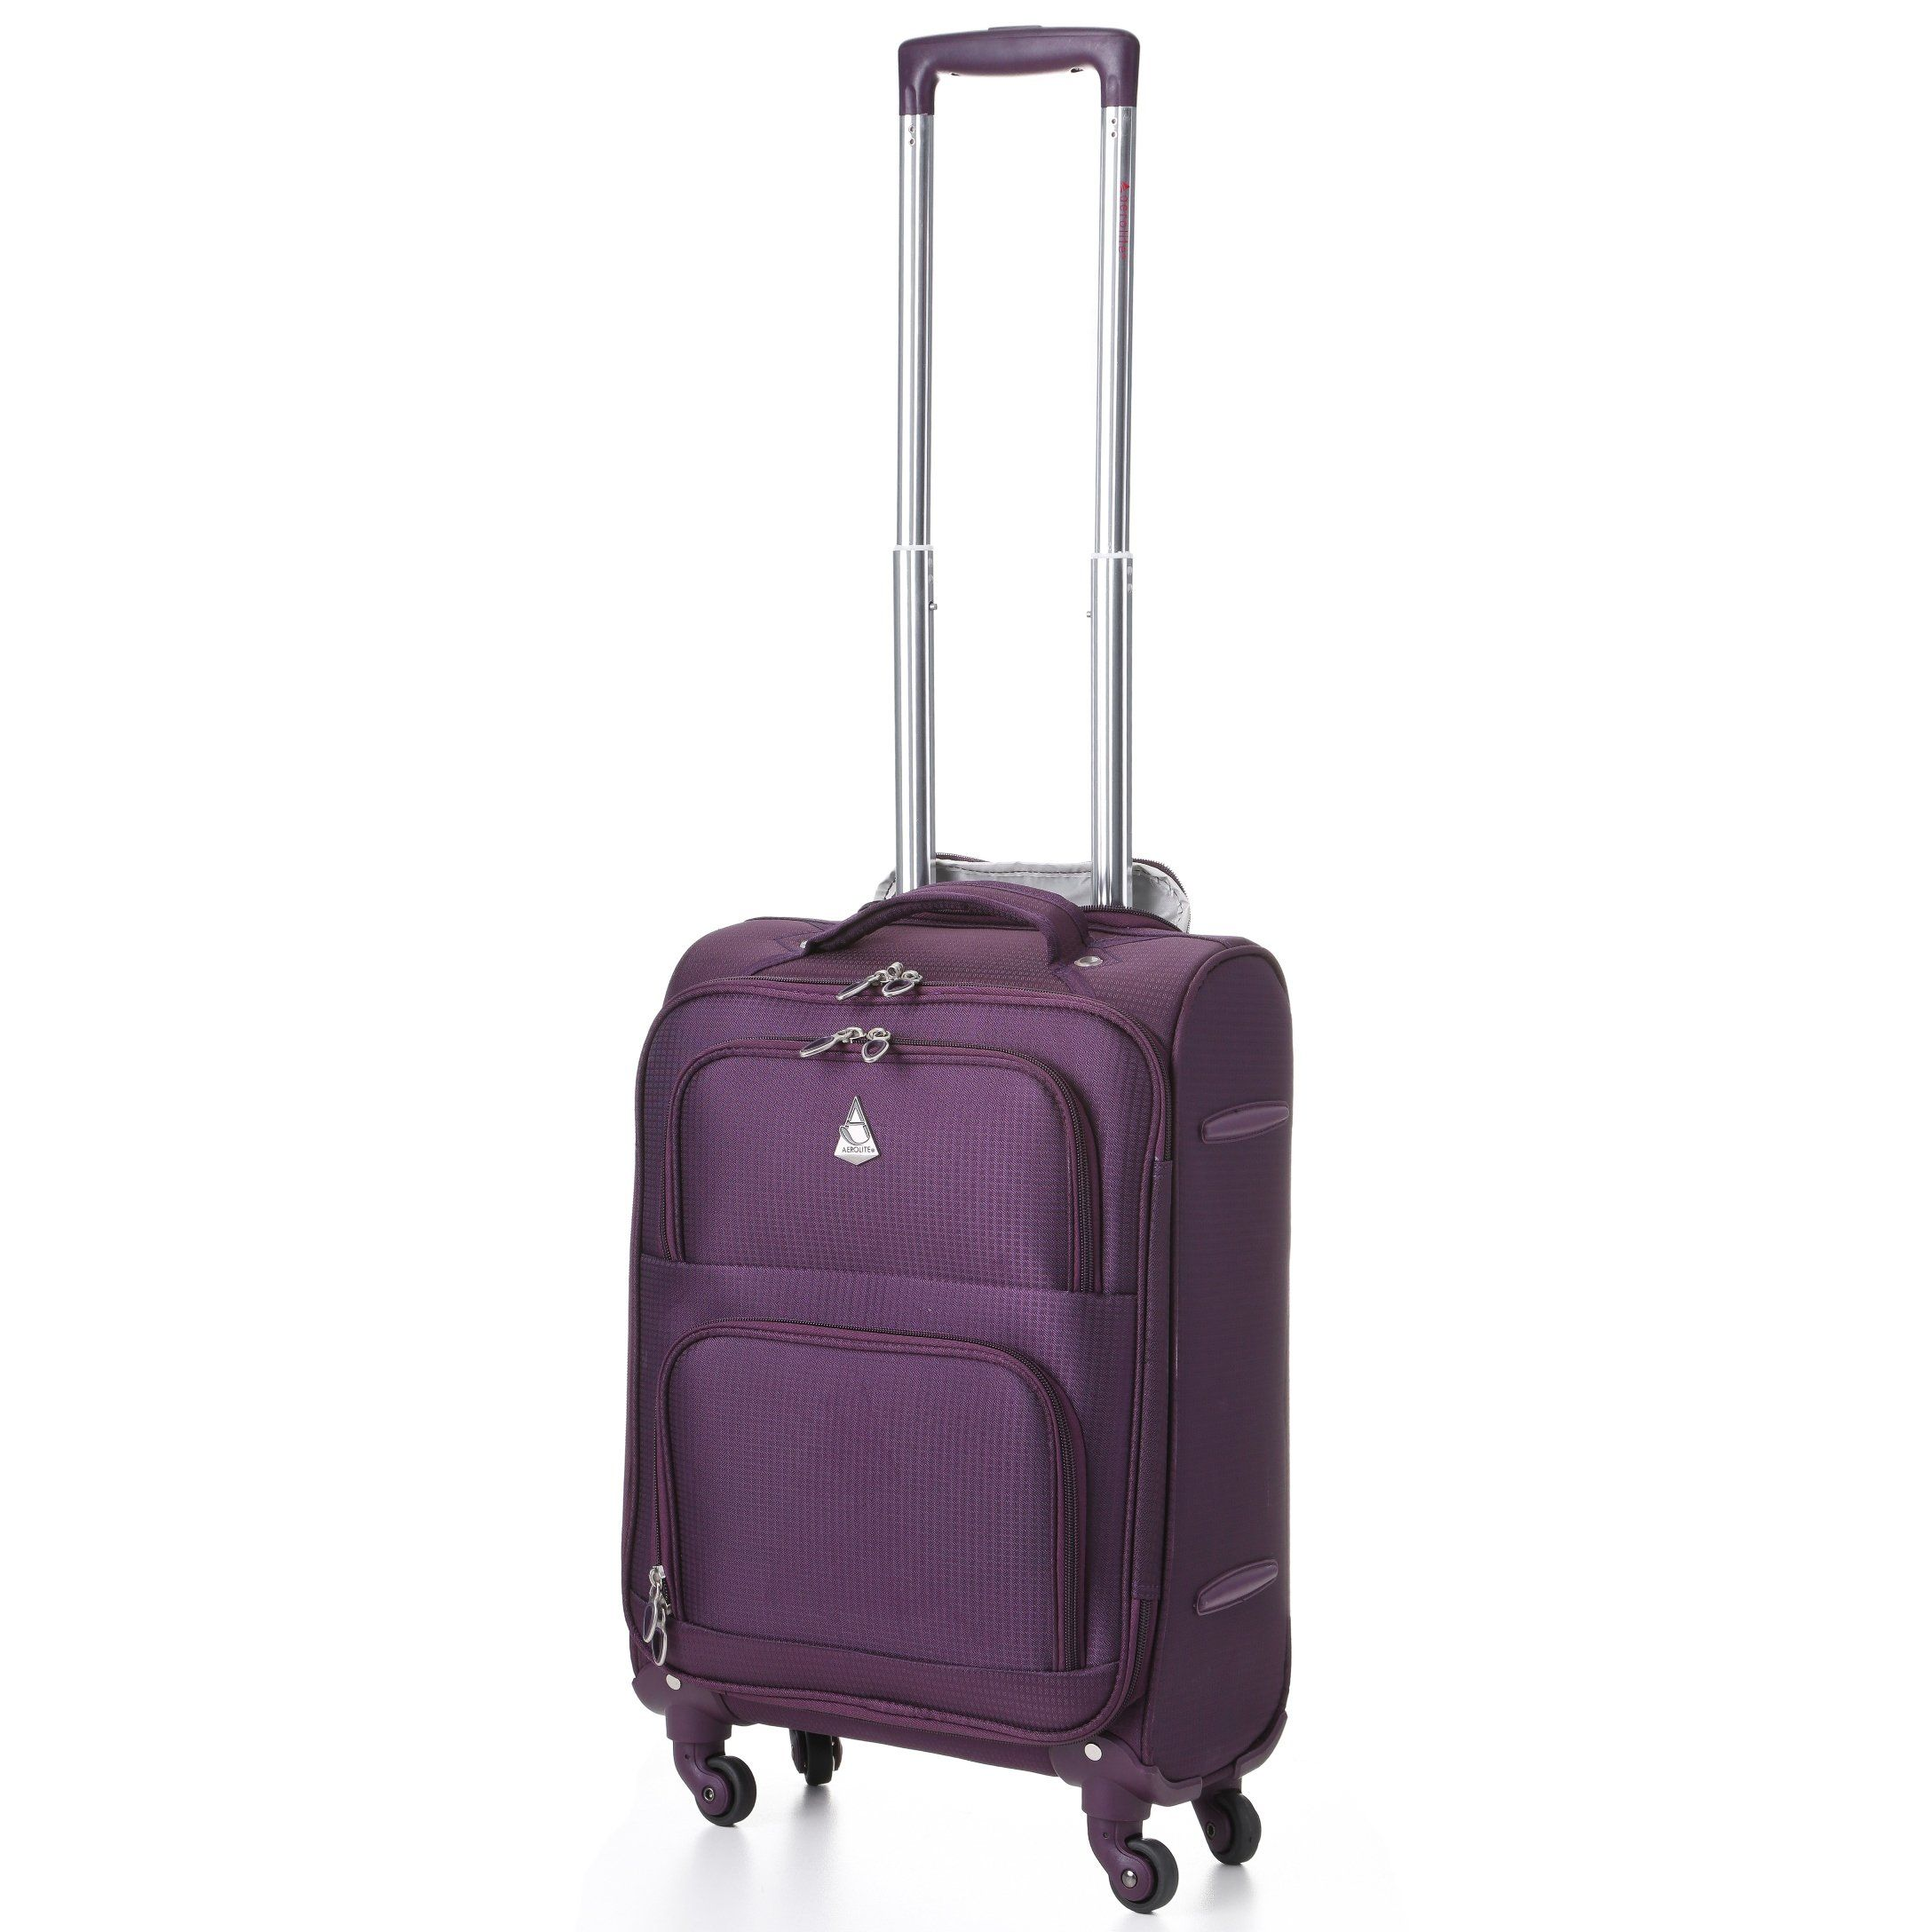 Amazon.com: Aerolite Lightweight Luggage Trolley Suitcases, 4 ...